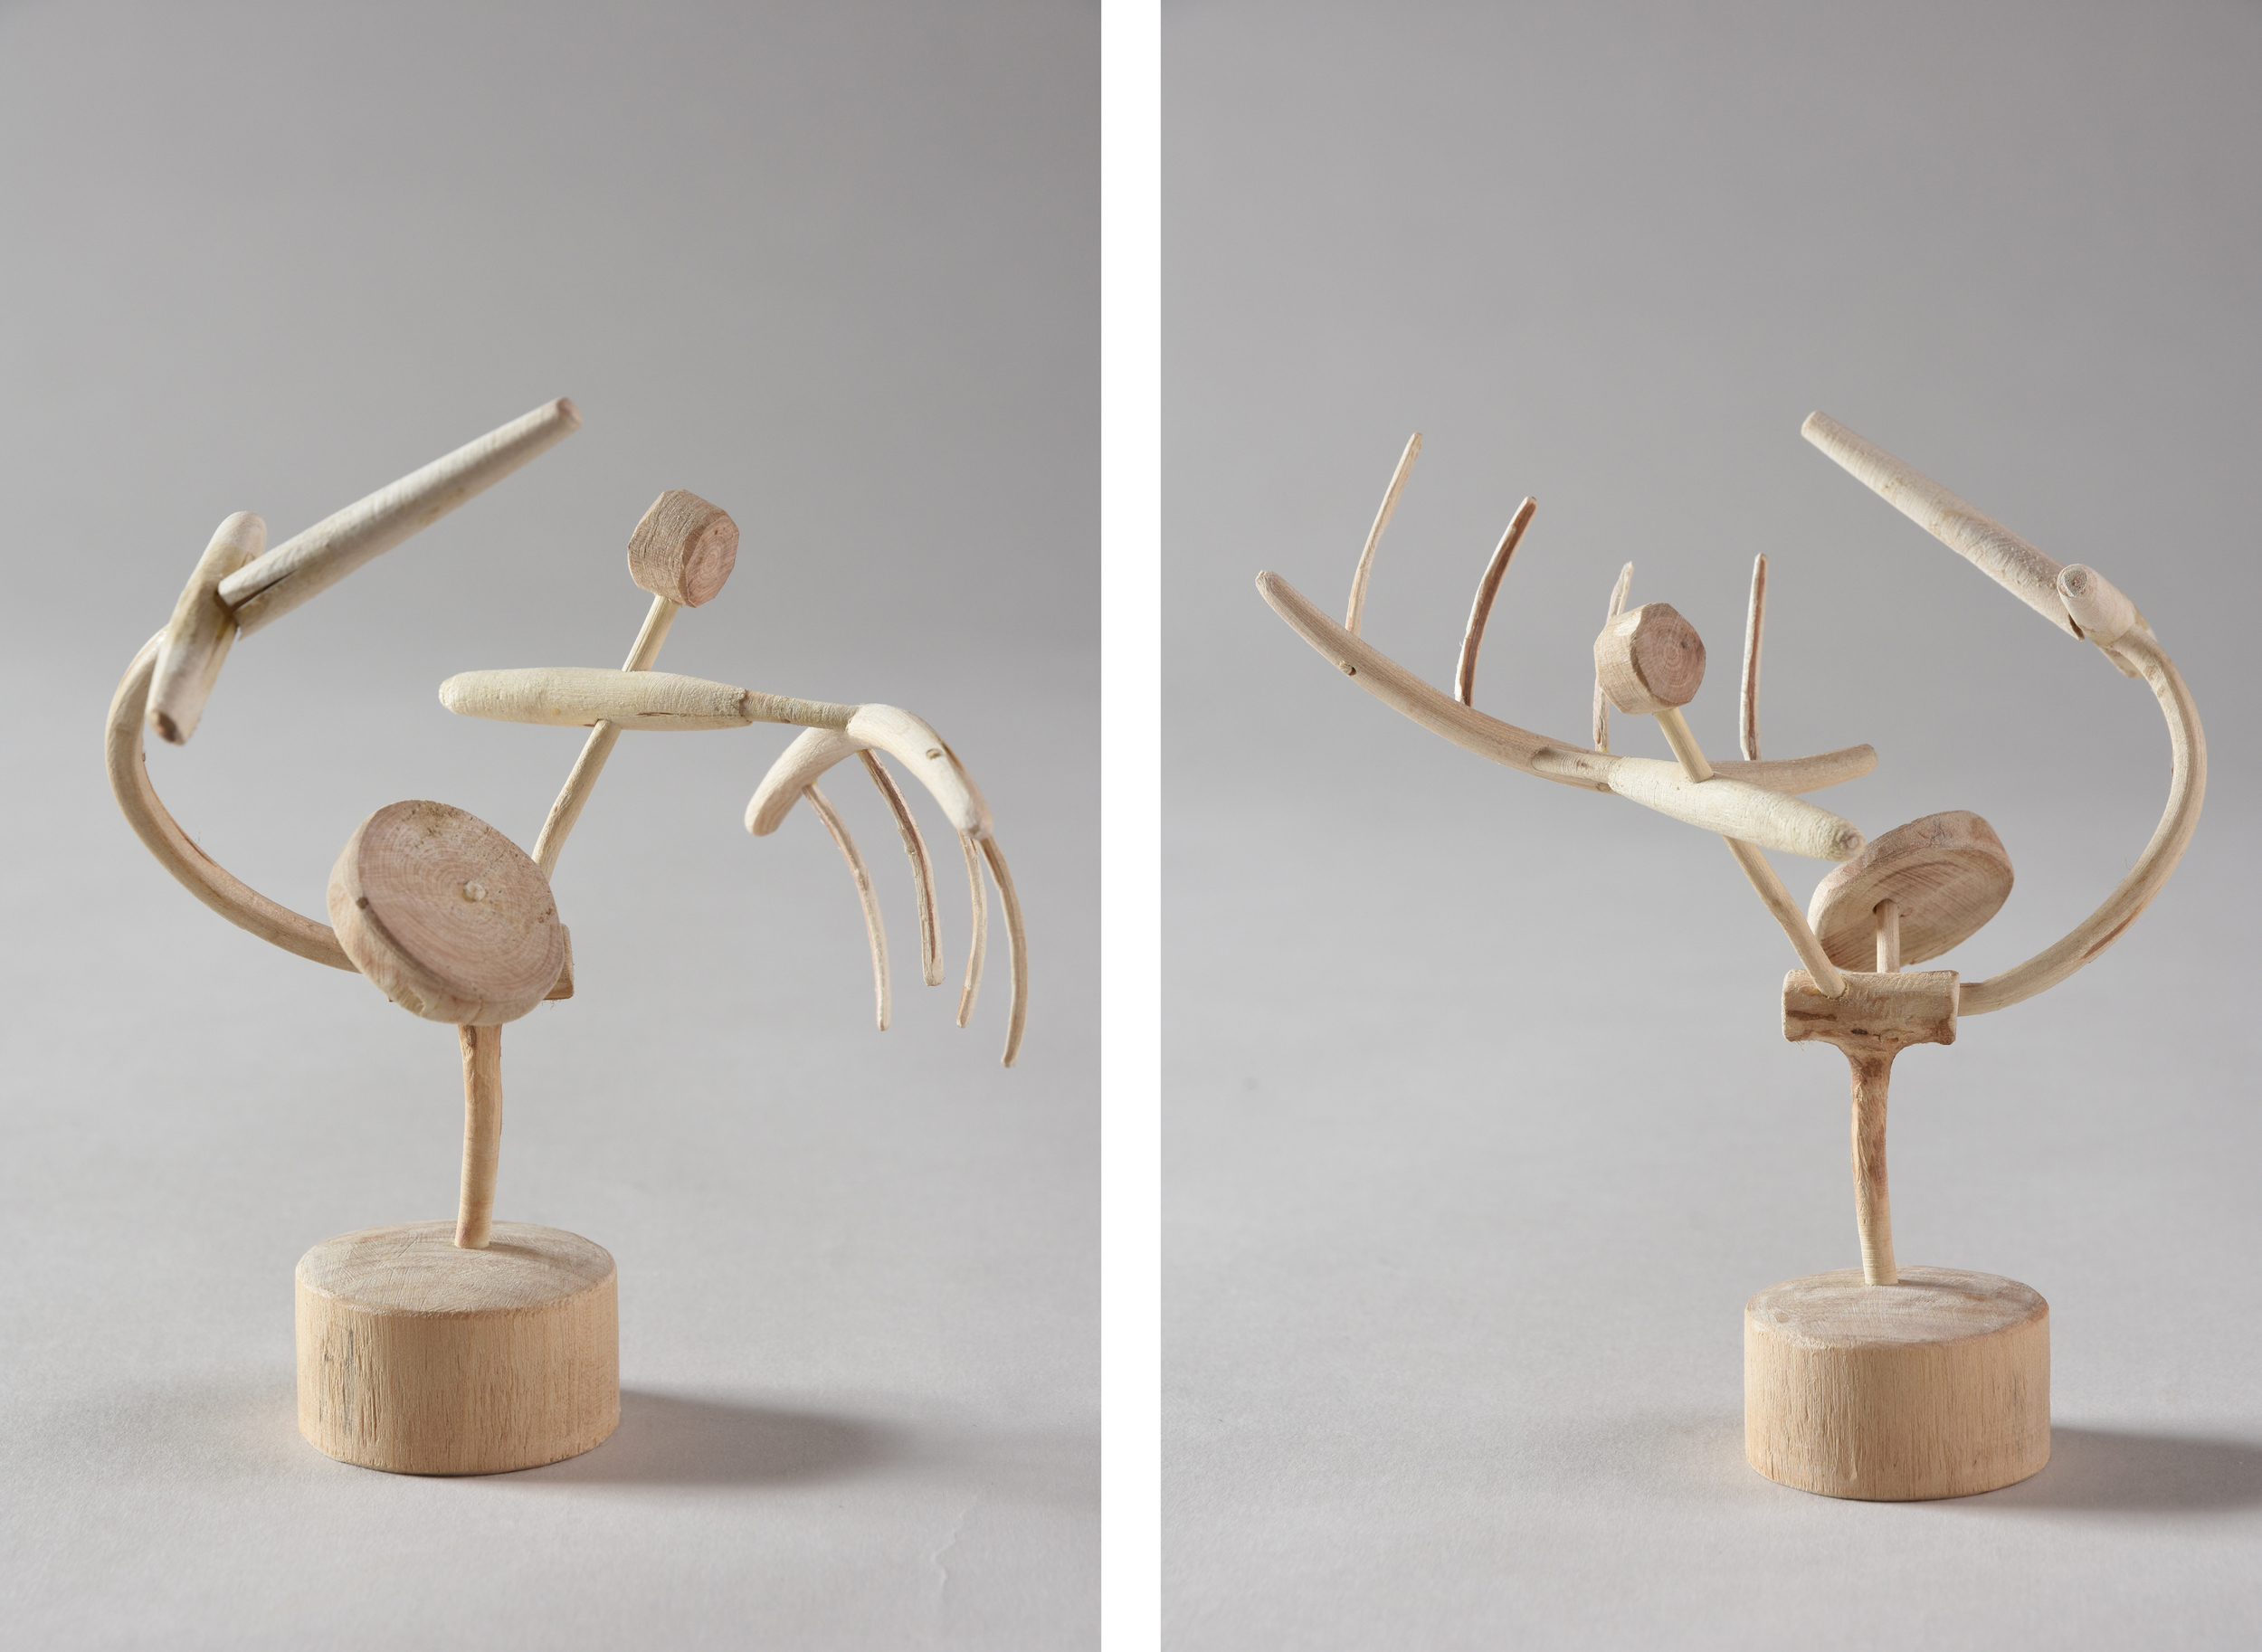 Posable Piece, 5 1/4 inches, maple, 2015